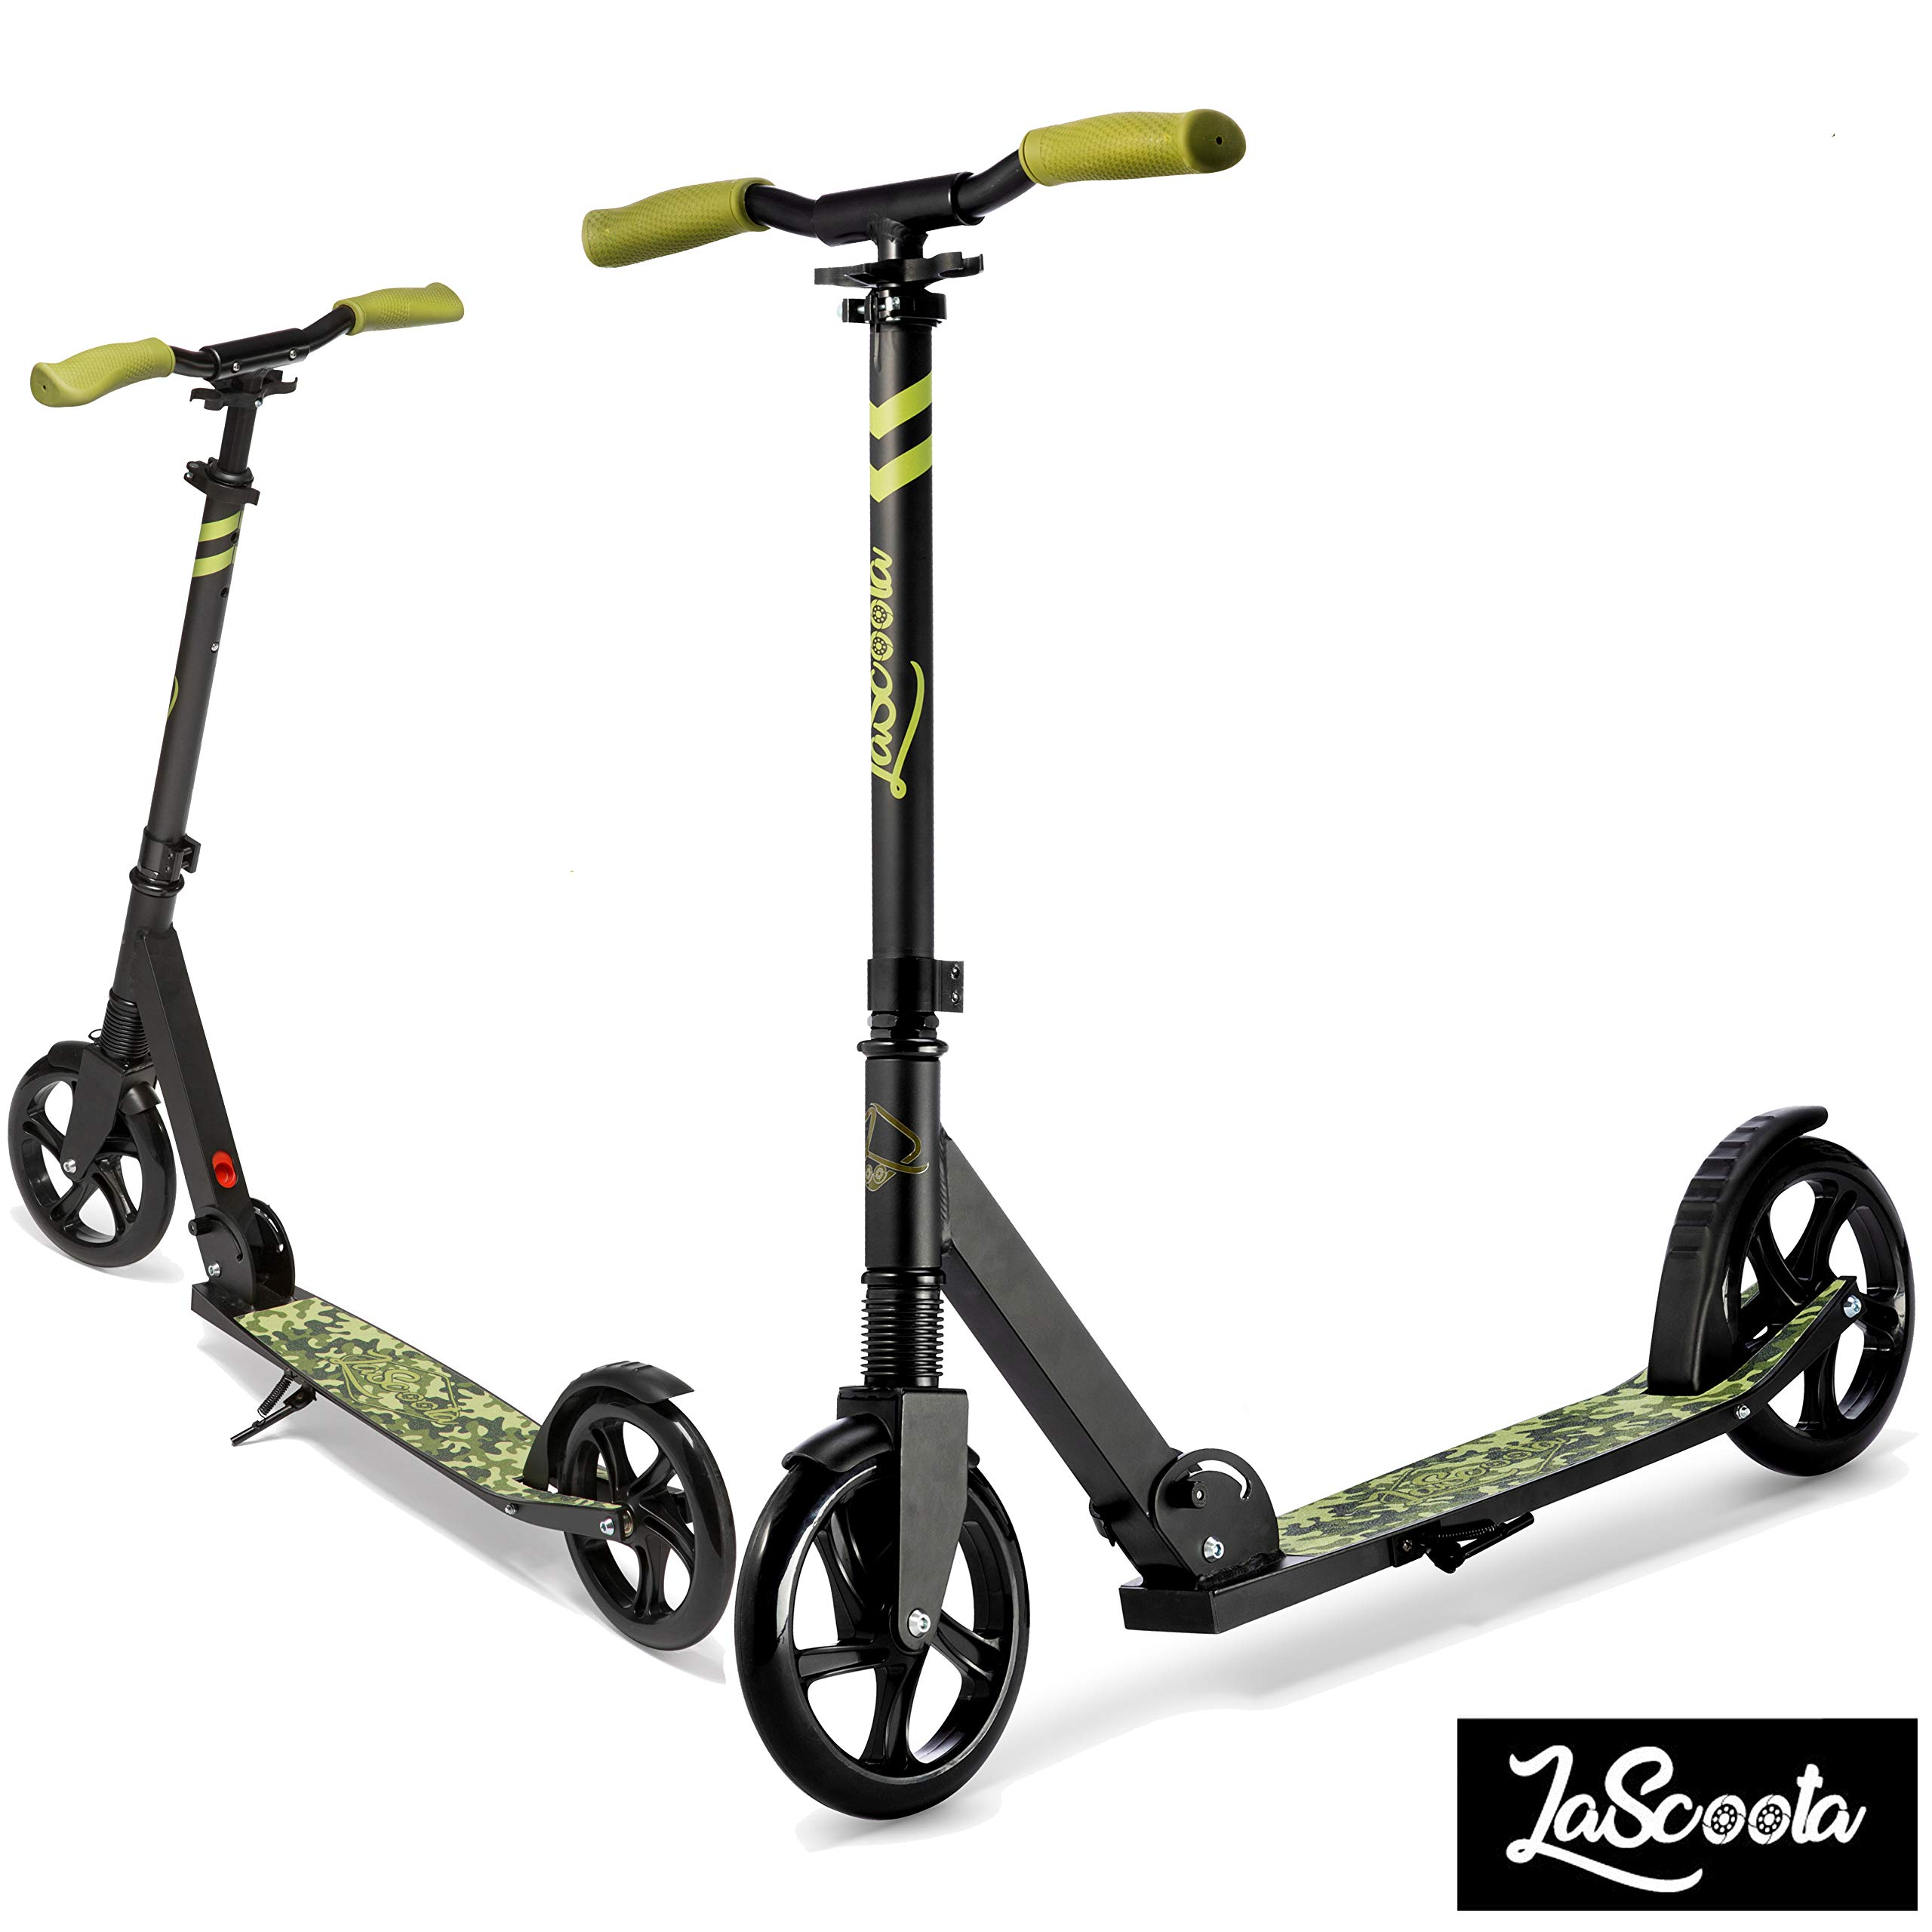 Lascoota Scooters for Kids 8 Years and up - Featuring Quick-Release Folding System - Dual Suspension System + Scooter Shoulder Strap 7.9'' Big Wheels Great Scooters for Adults and Teens